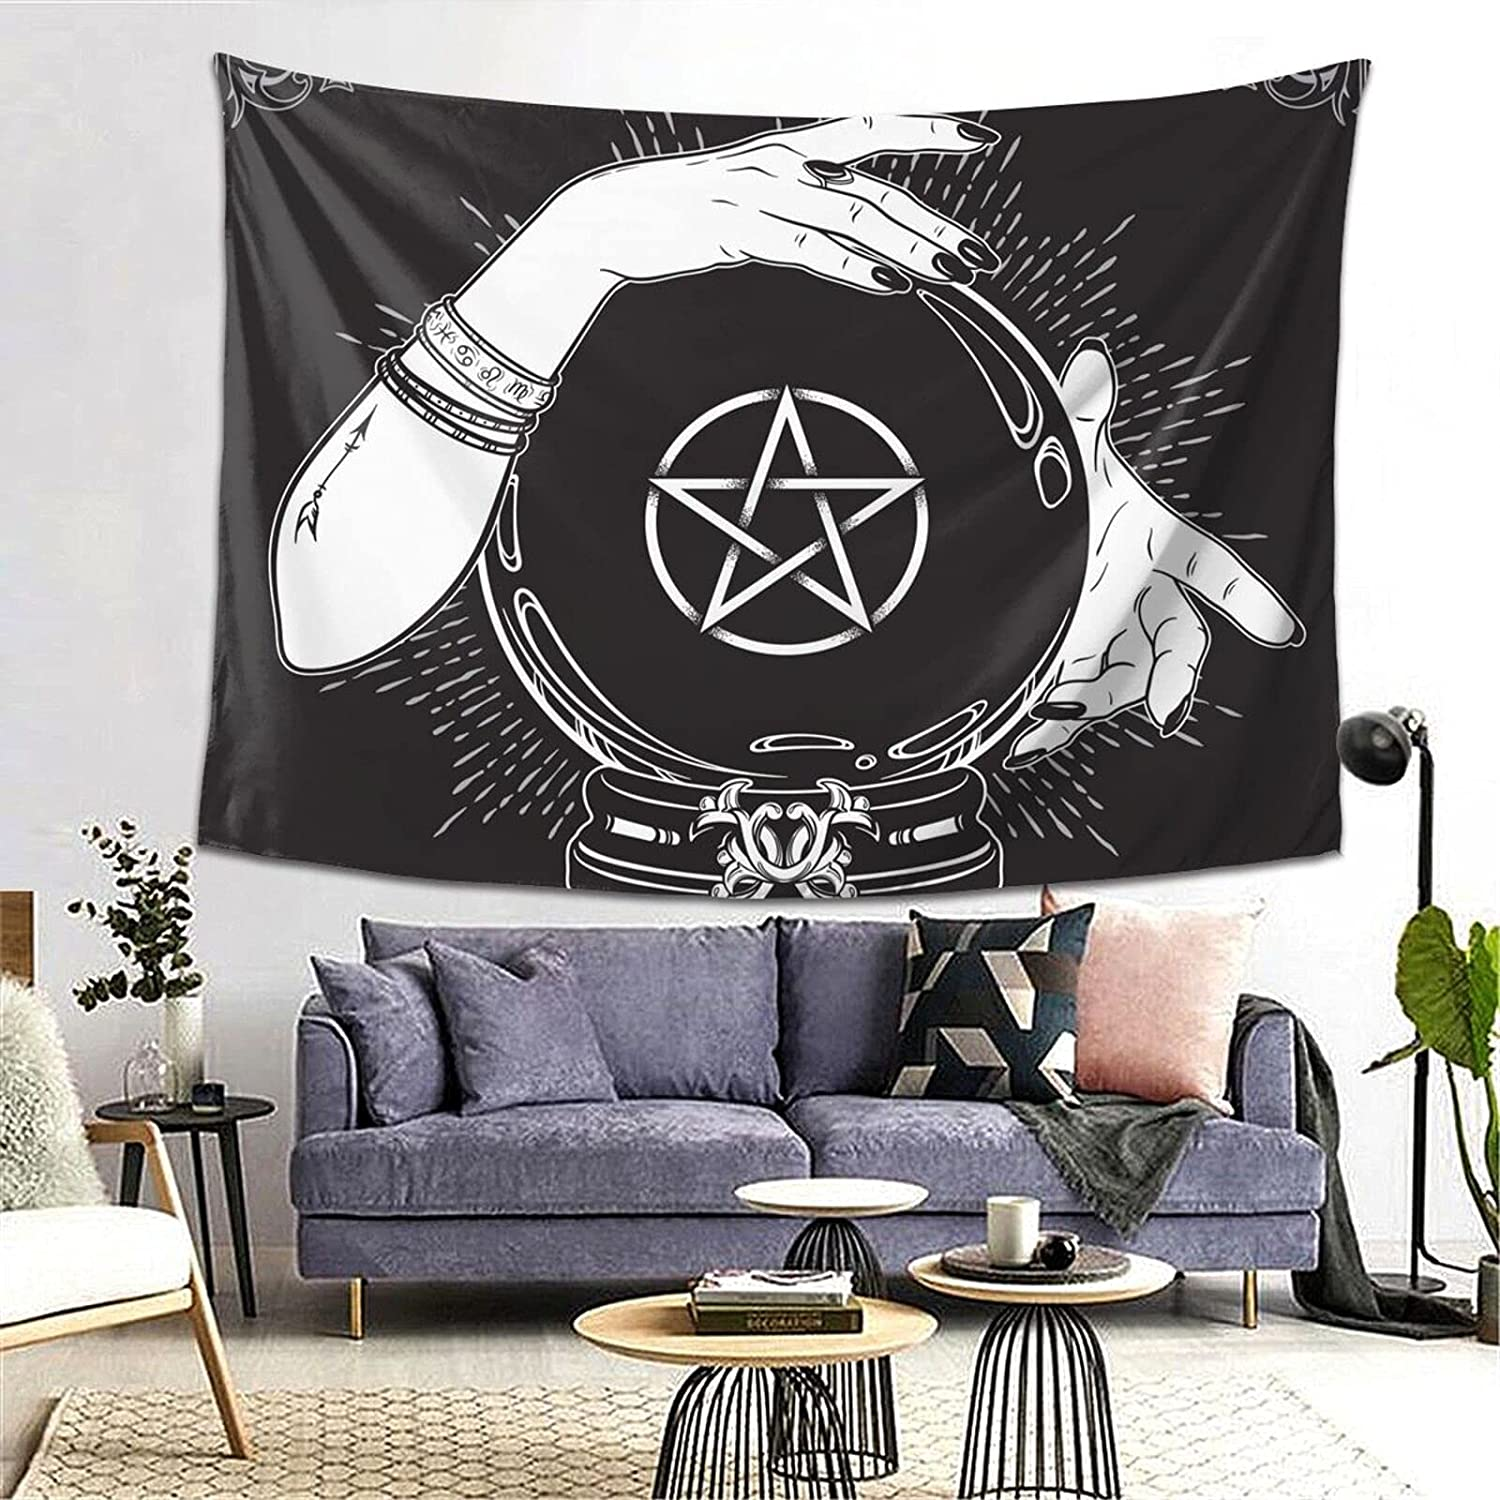 Hand Drawn Magic Crystal Ball Pentagram Star Hands Fortune Teller Tapestry Yoga Tapestries Wall Hanging Home Decoration Bedroom Decor Living Room Door Curtain Balcony Room Divider 80 X 60 Inch